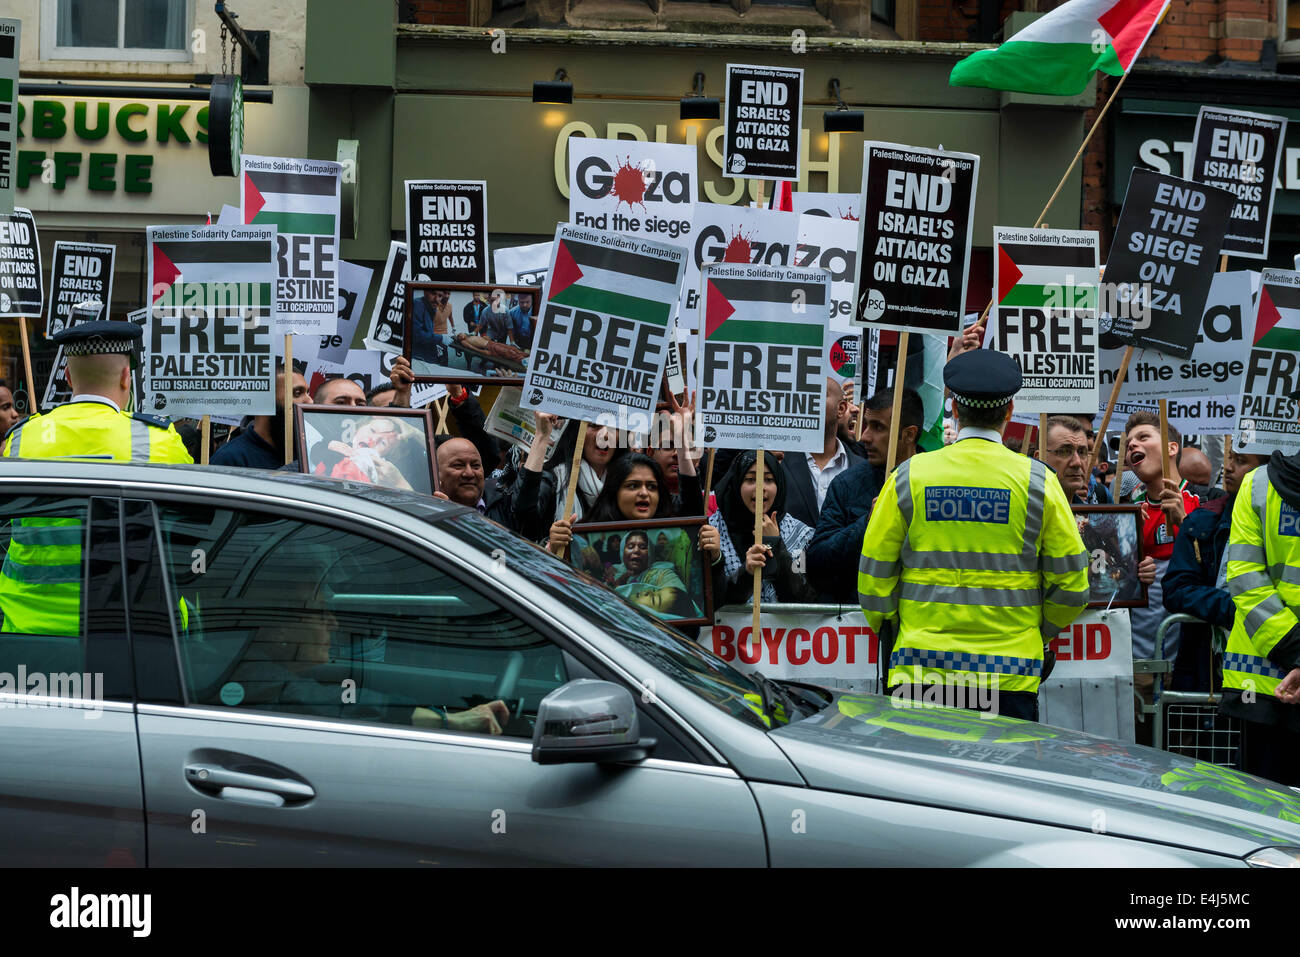 Pro-Palestinian protest in London attracted thousands of supporters and activists - Stock Image